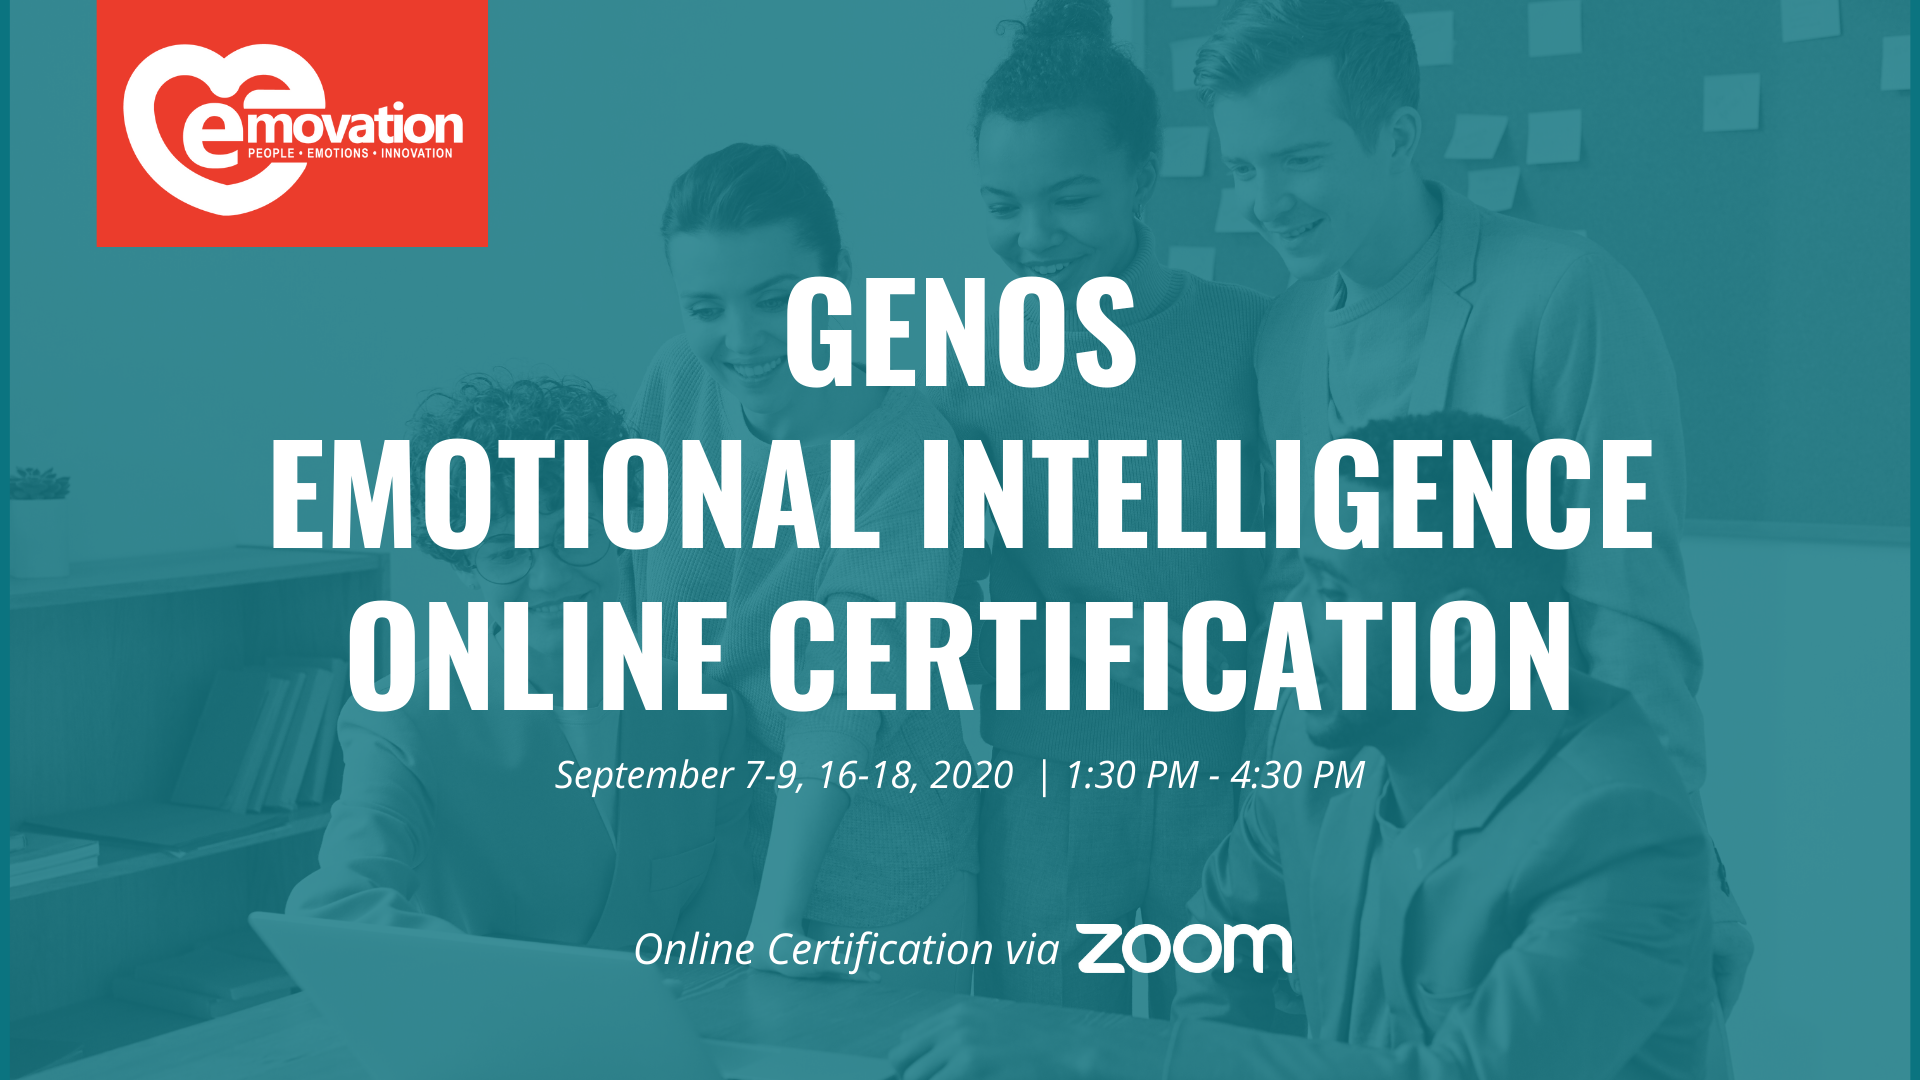 Genos Emotional Intelligence Certification